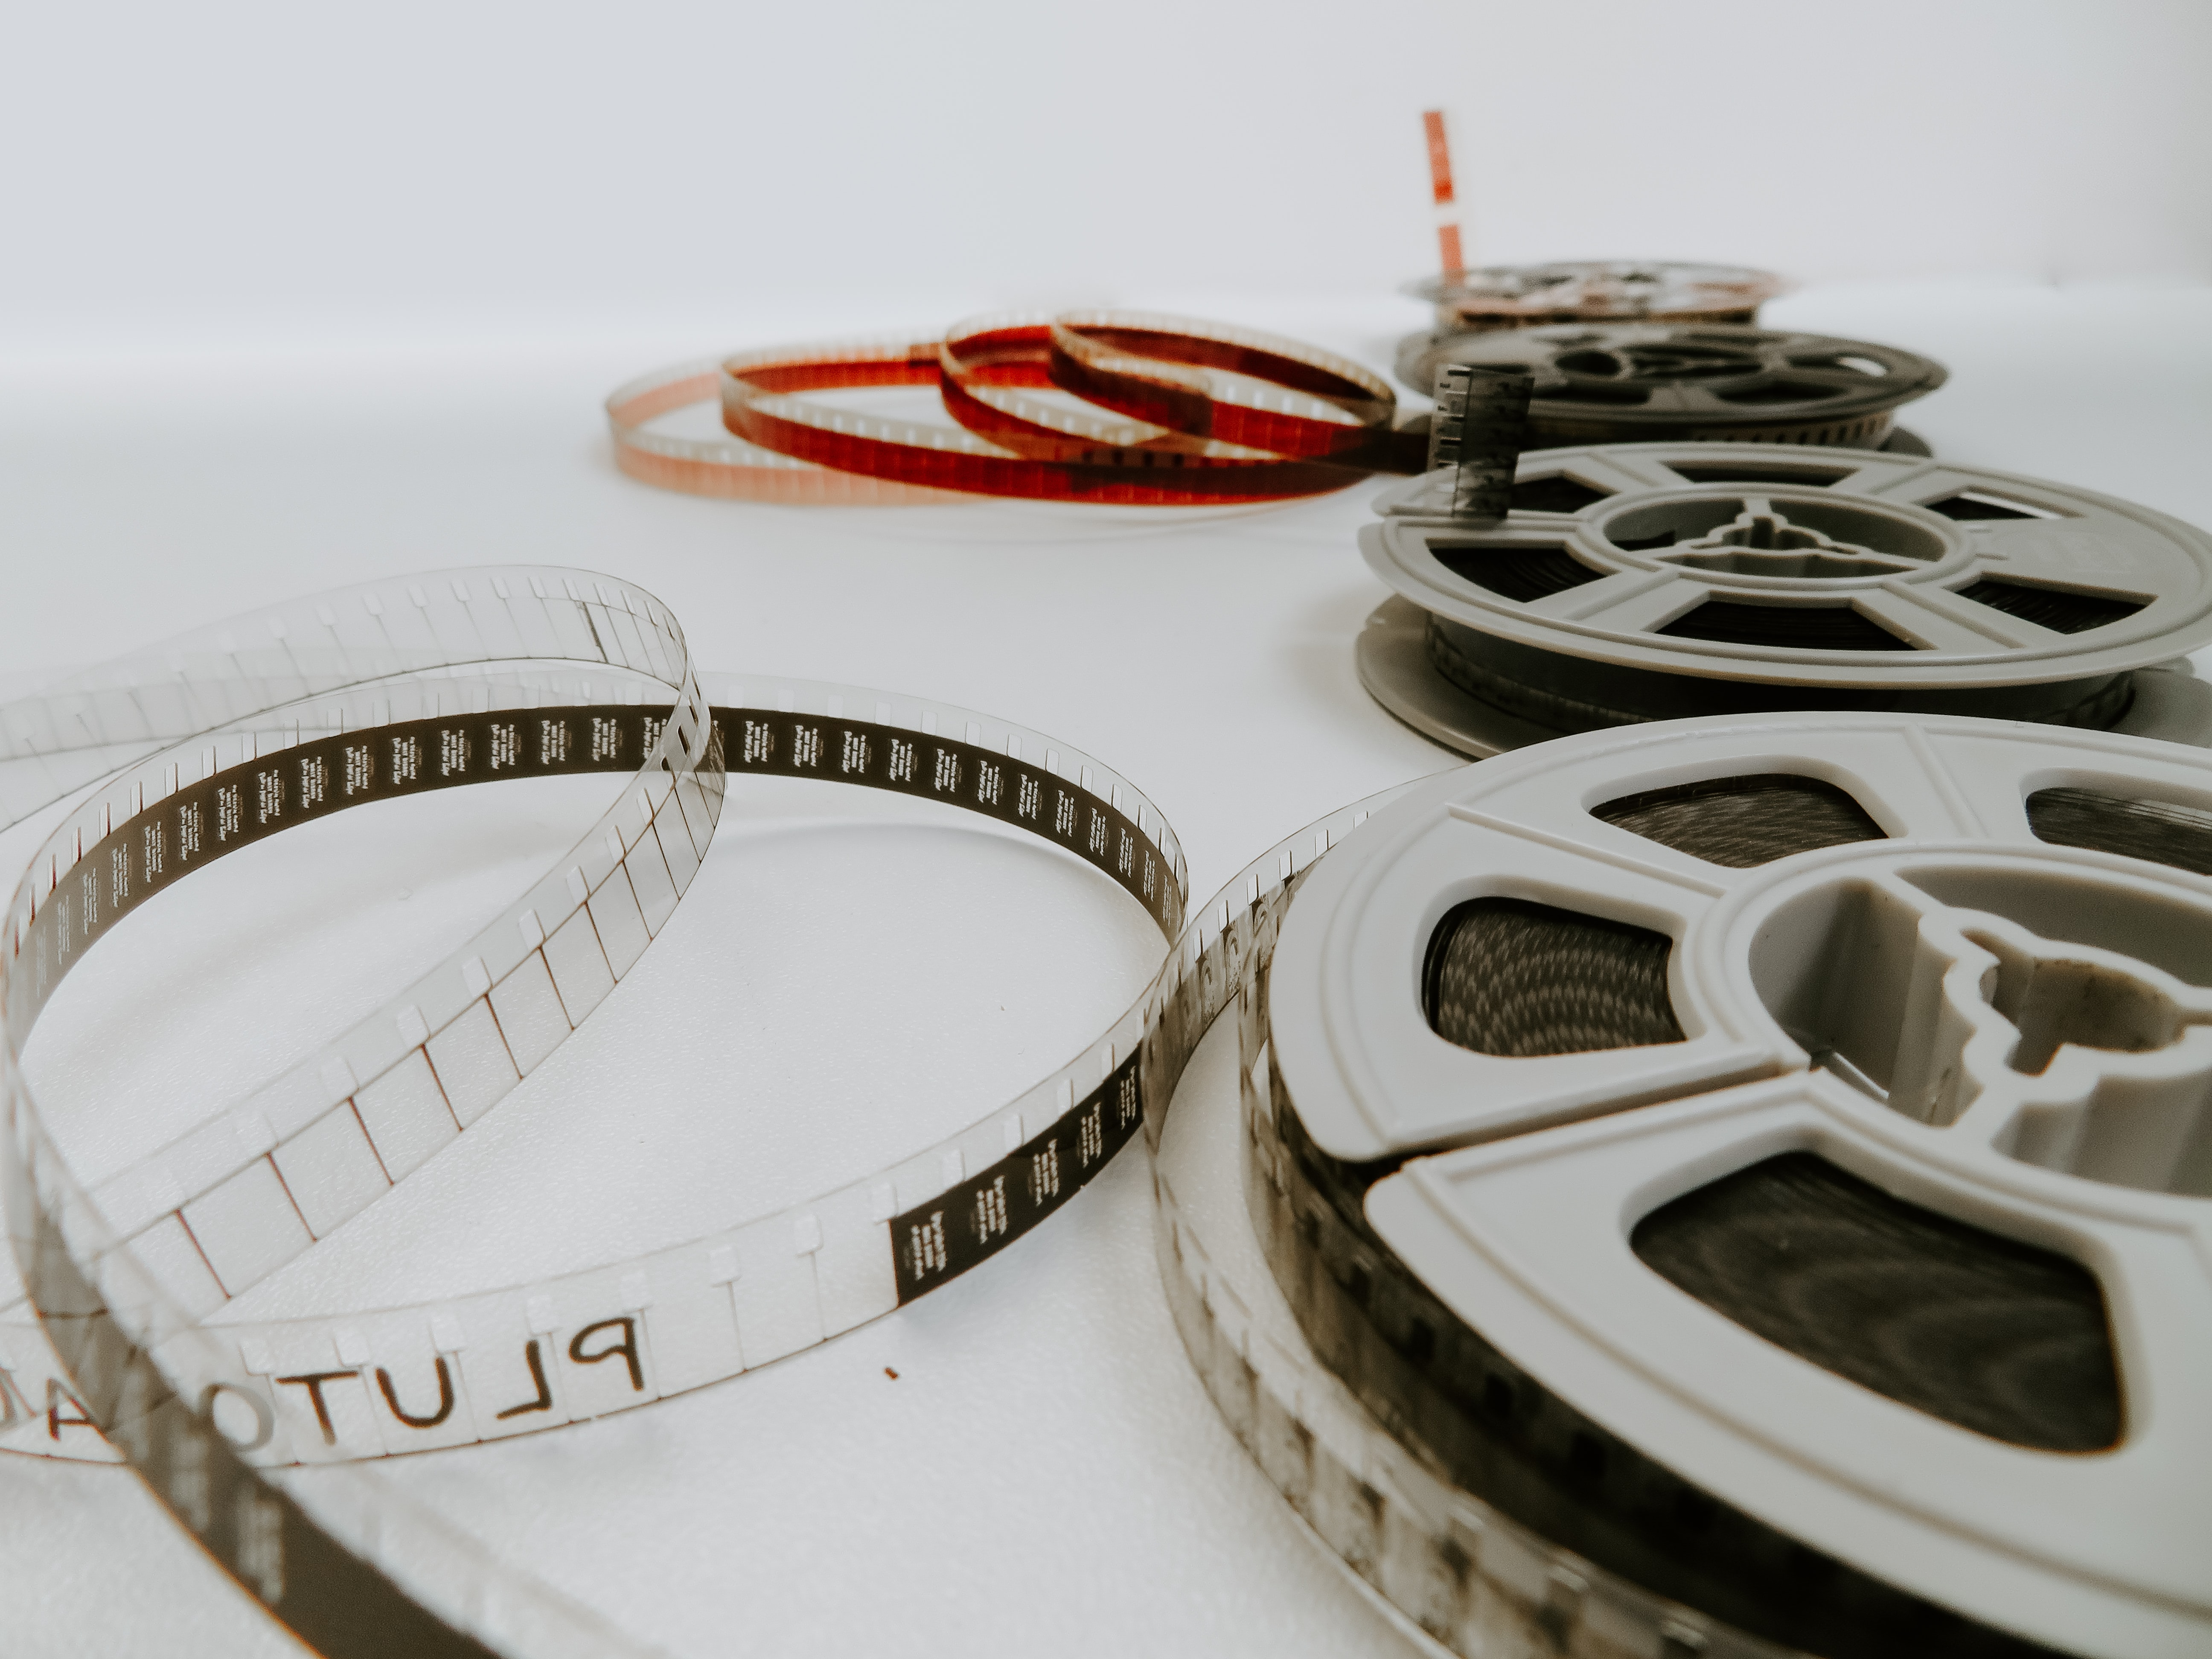 Roles of cinama film laying on the ground with a white background.